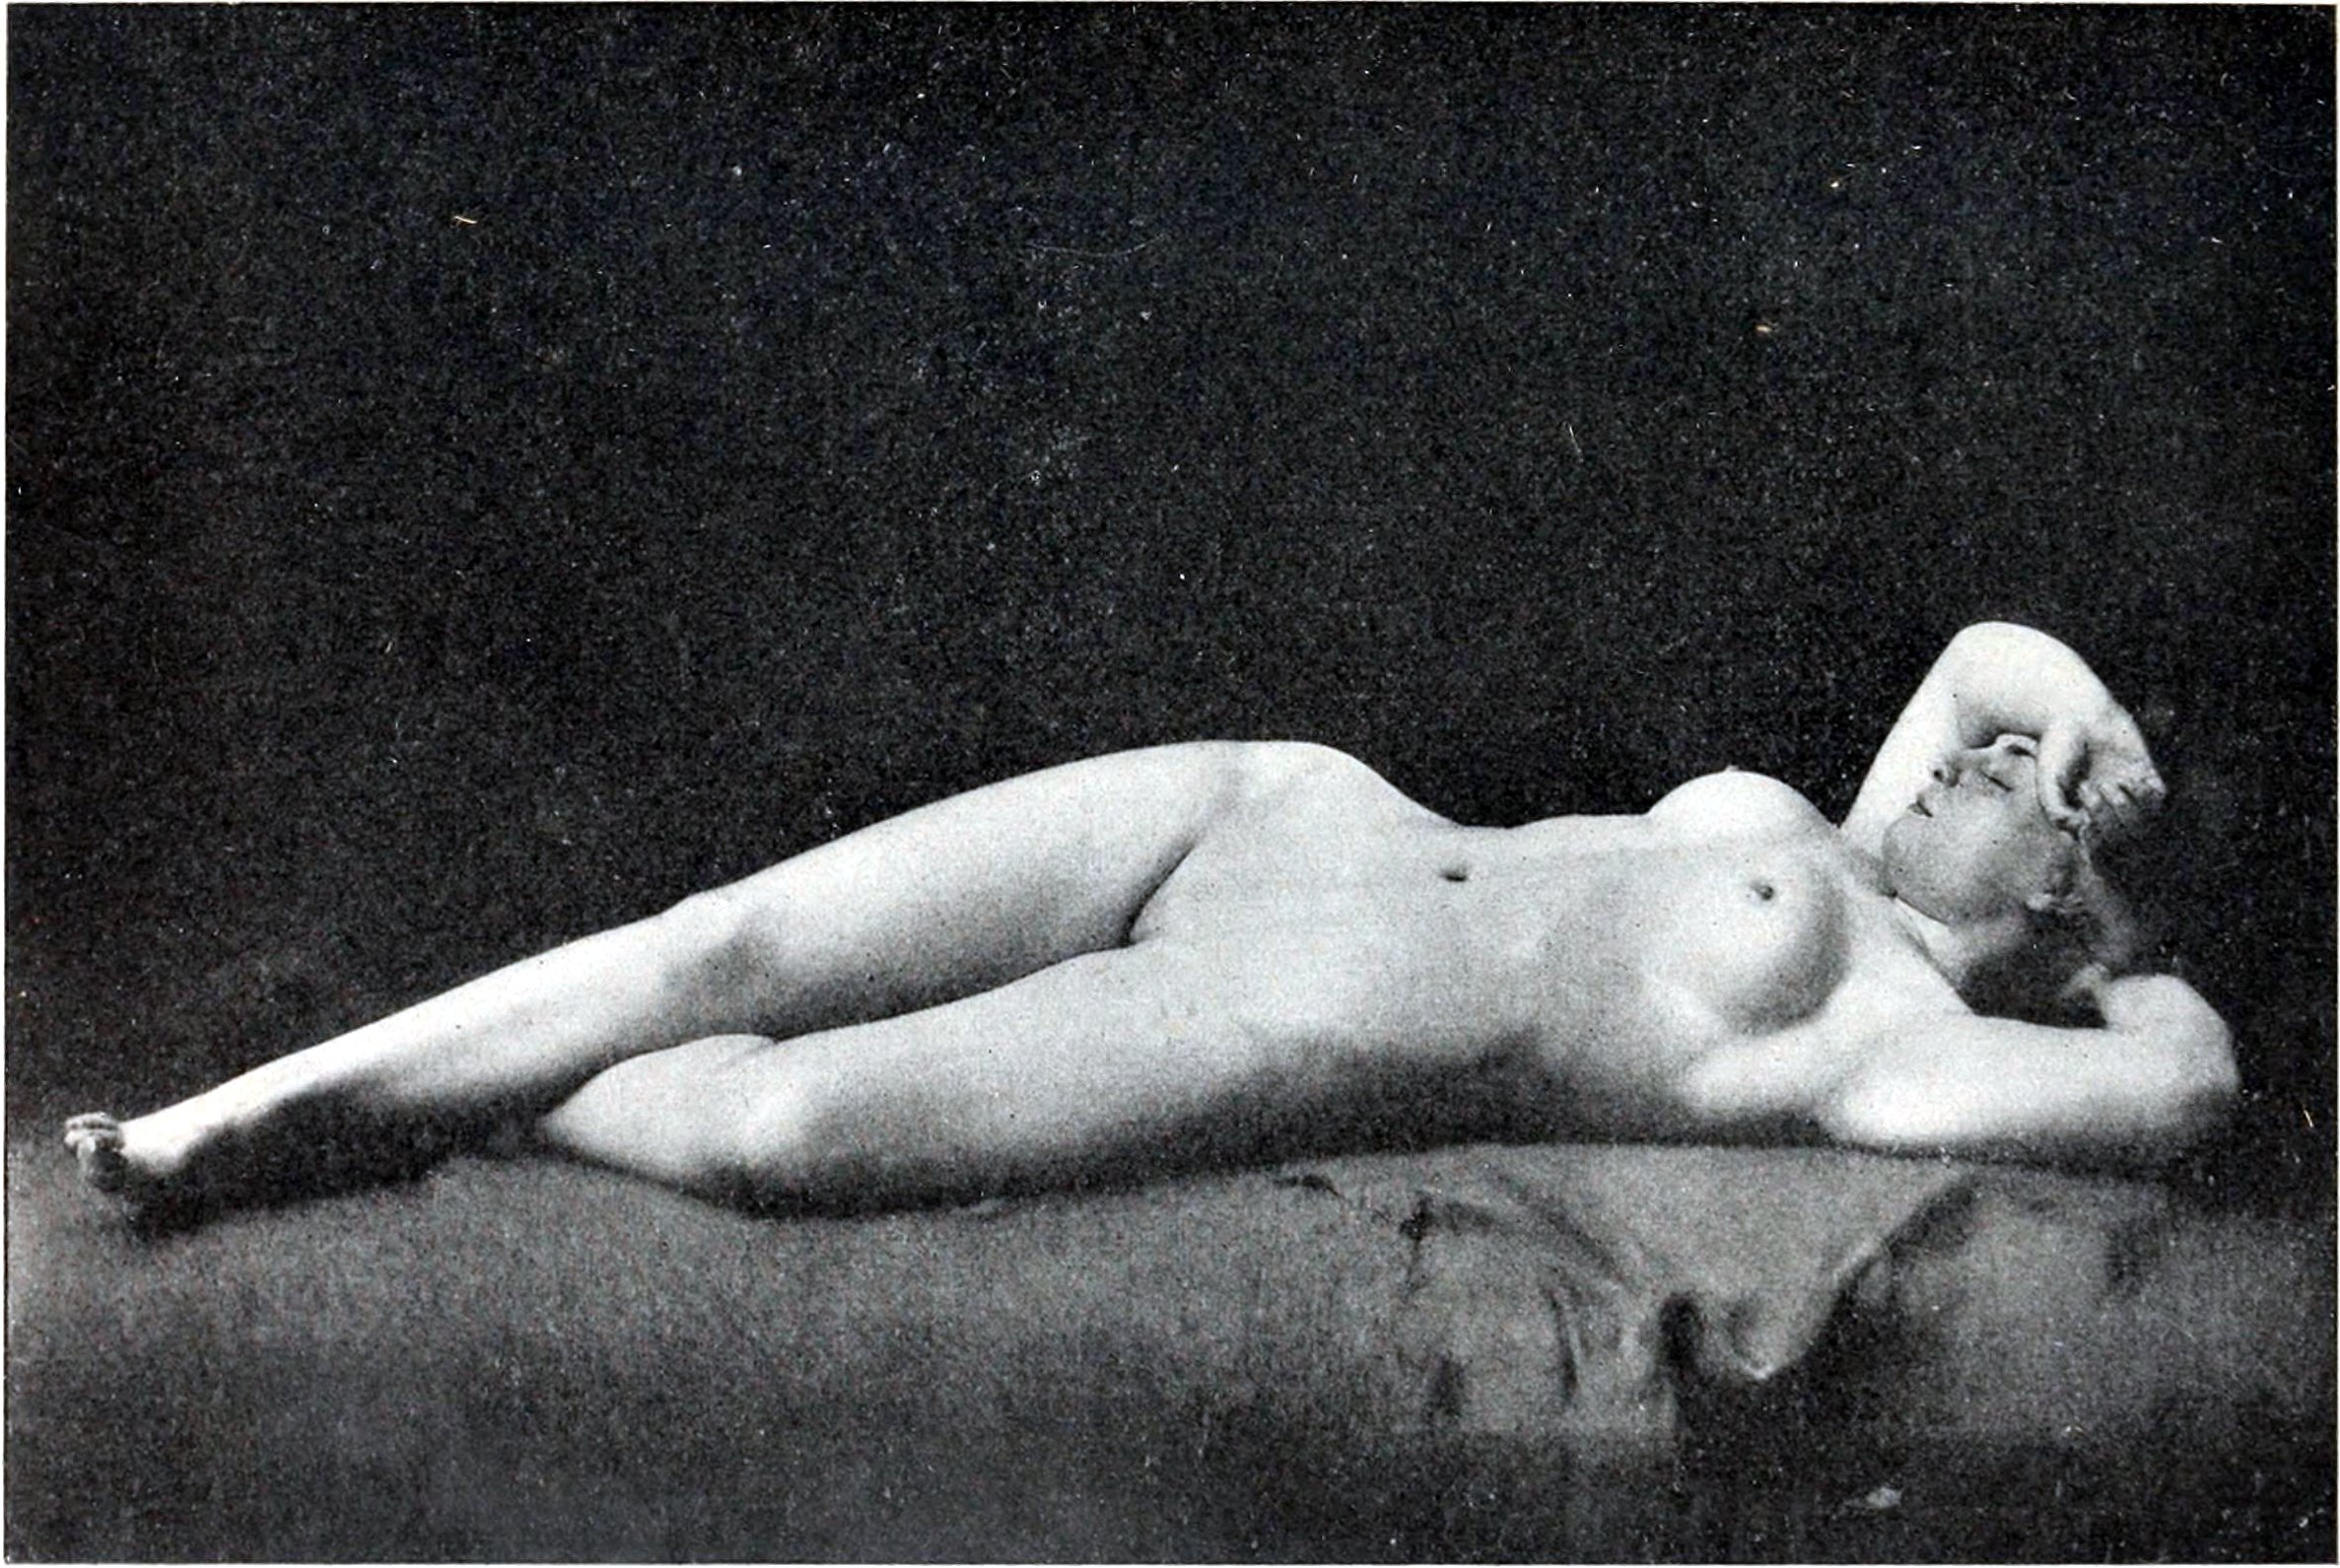 http://upload.wikimedia.org/wikipedia/commons/c/c2/Philippe_Zacharie_La_femme_qui_dort.jpg